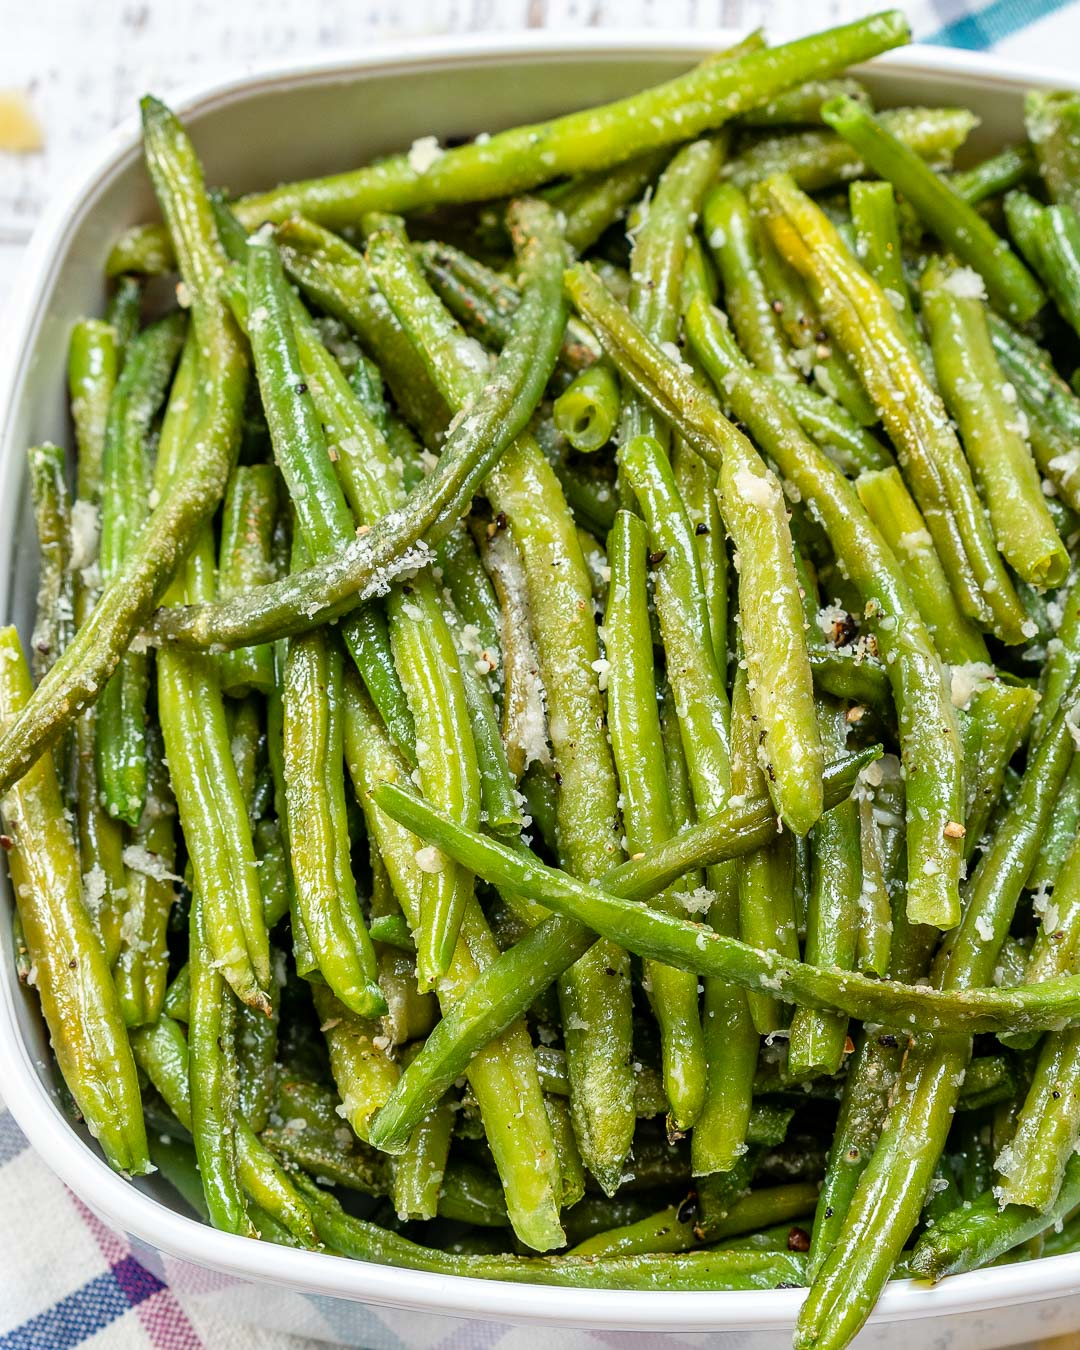 Parmesan Roasted Green Beans by Rachel